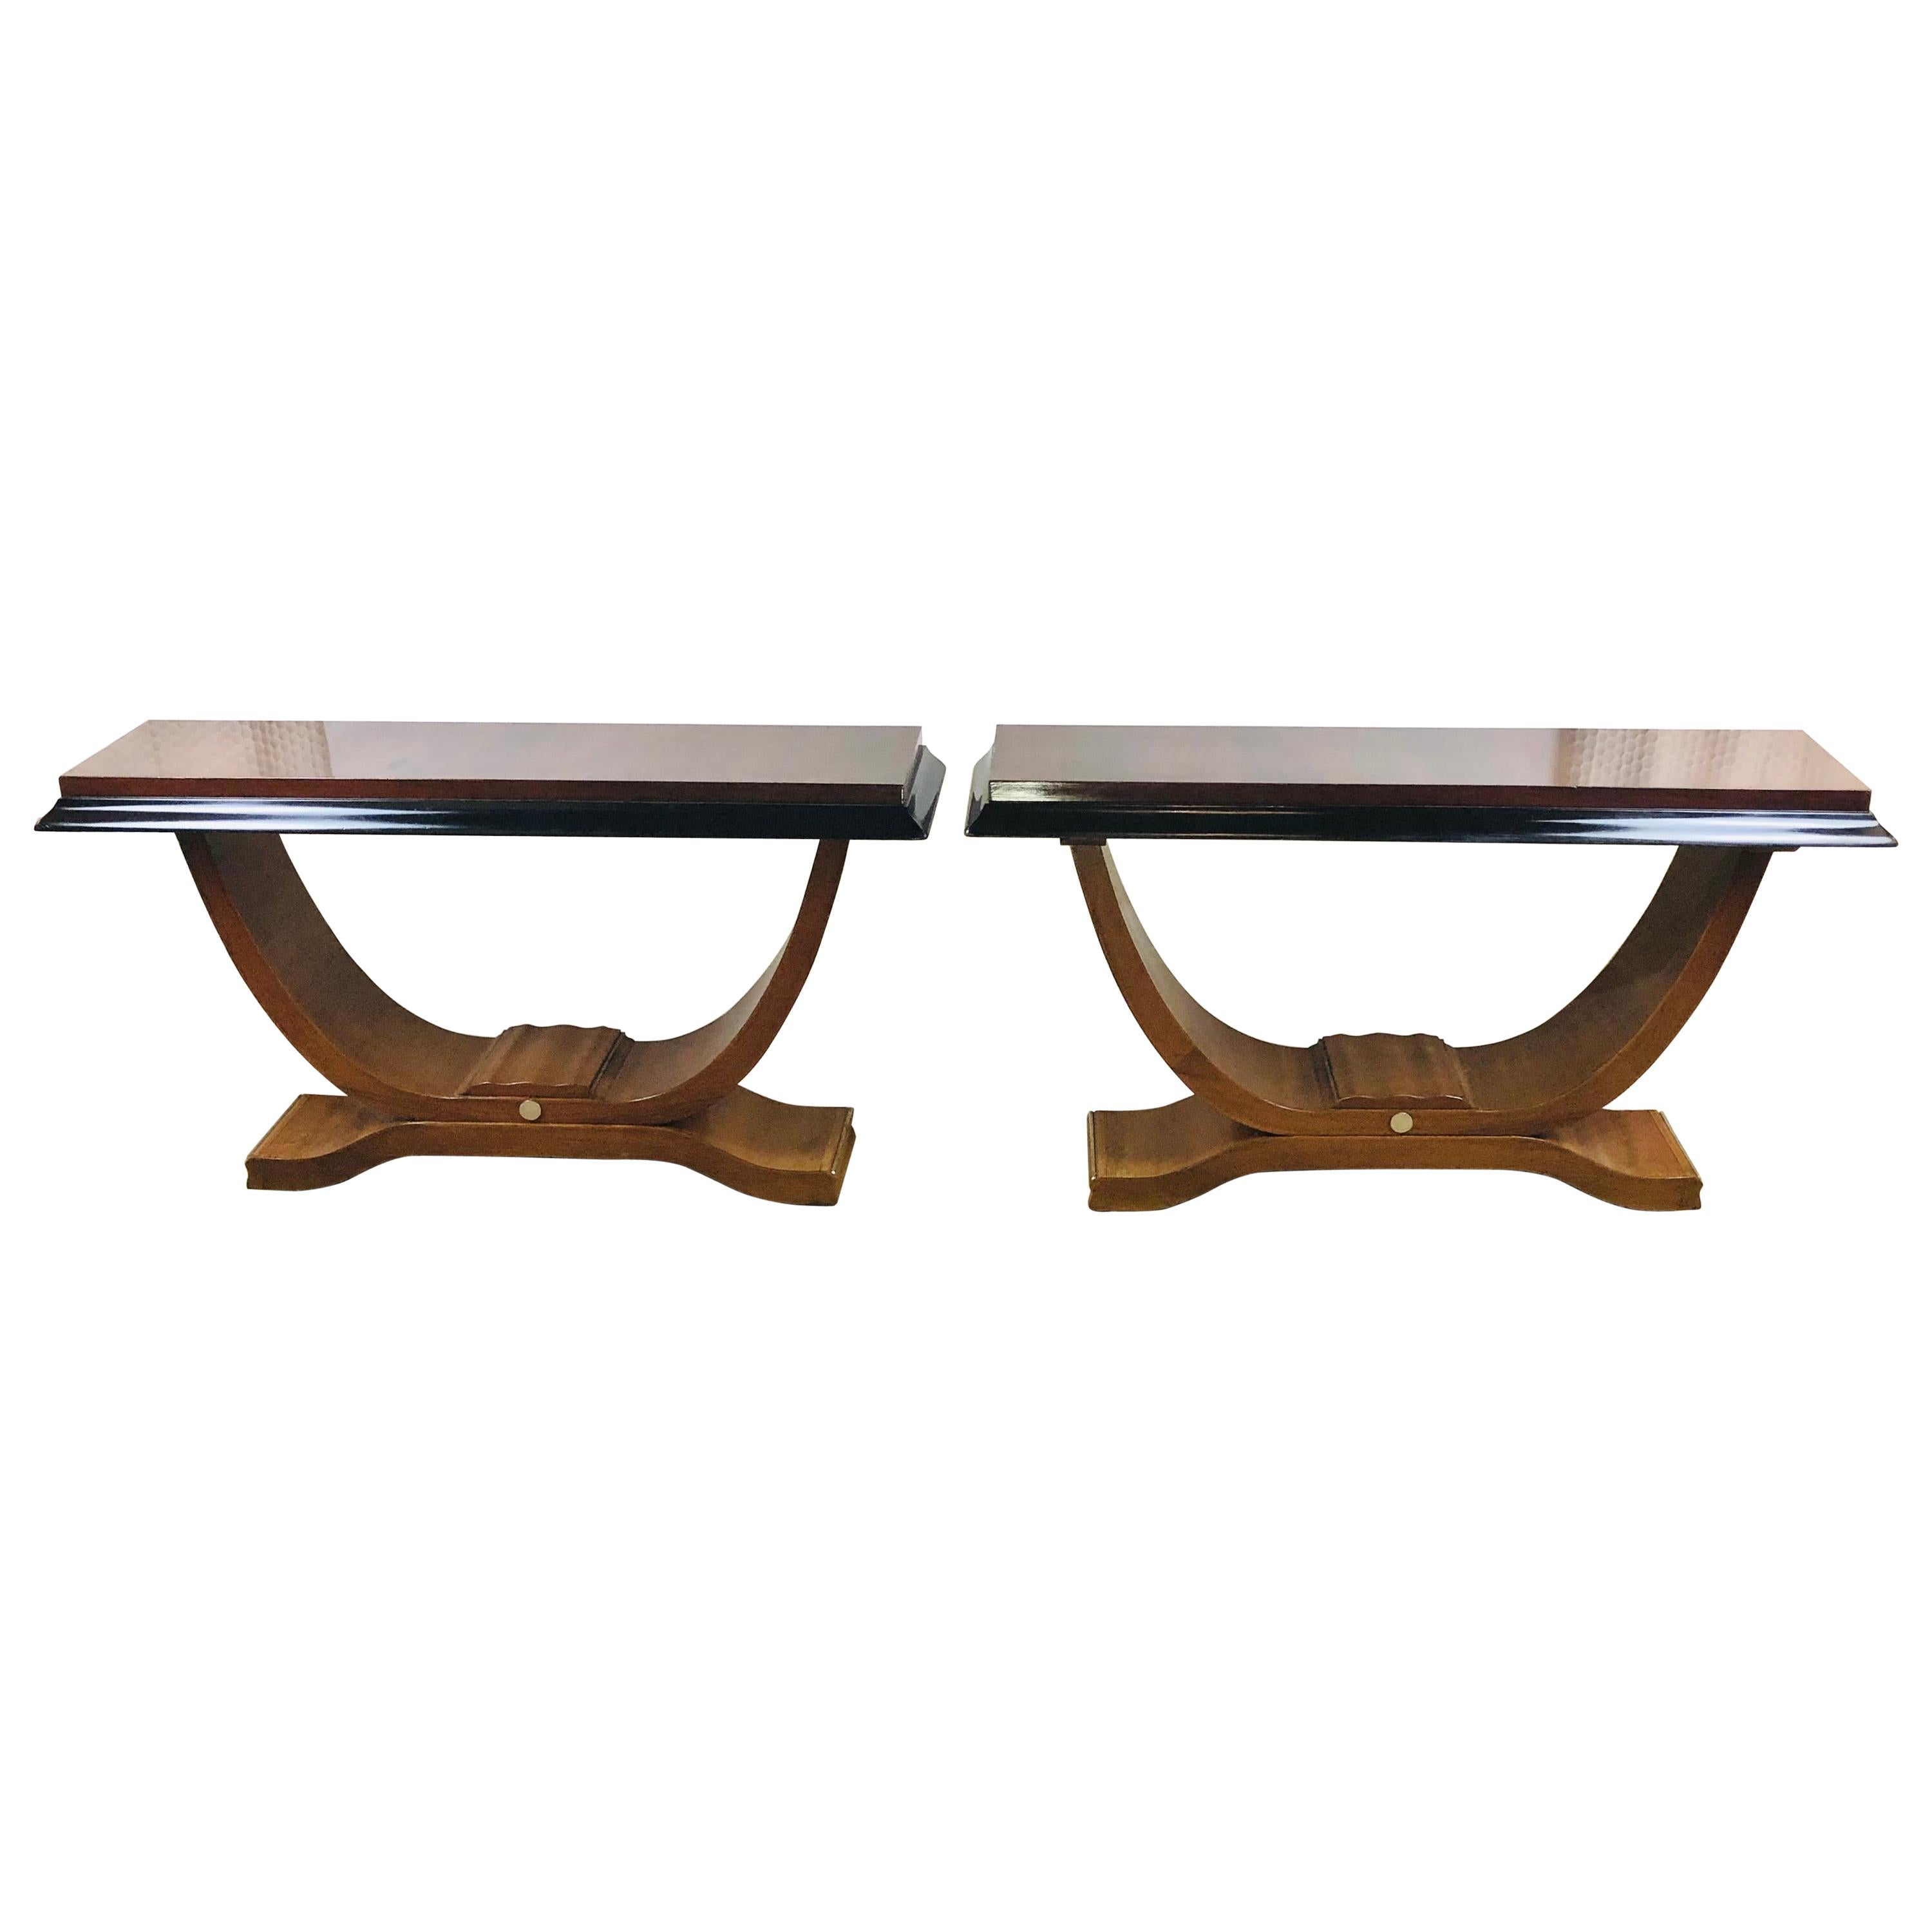 Pair of French Art Deco Elegant Consoles with Nickeled Trim